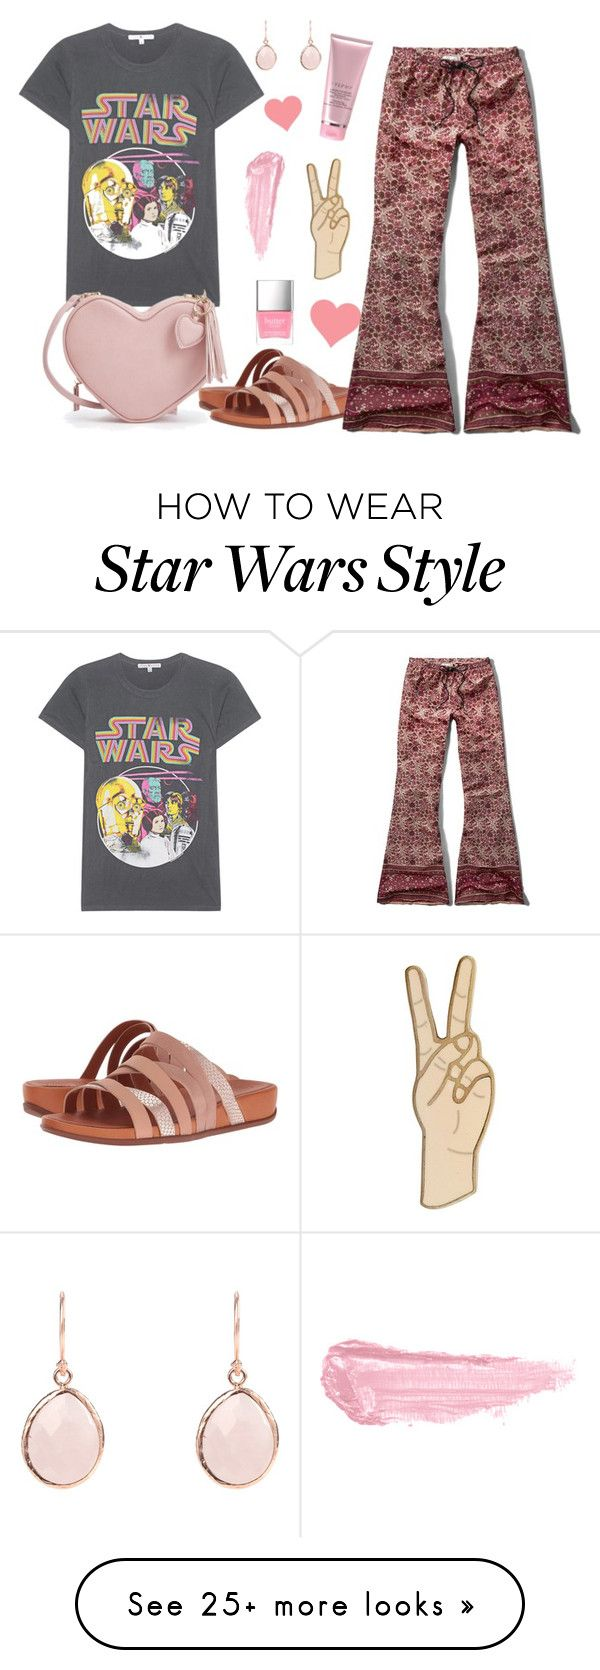 """""""Just A Girl"""" by lovekaitlin on Polyvore featuring FitFlop, Junk Food Clothing, Abercrombie & Fitch, Lucky Brand, By Terry, Butter London and starwars"""